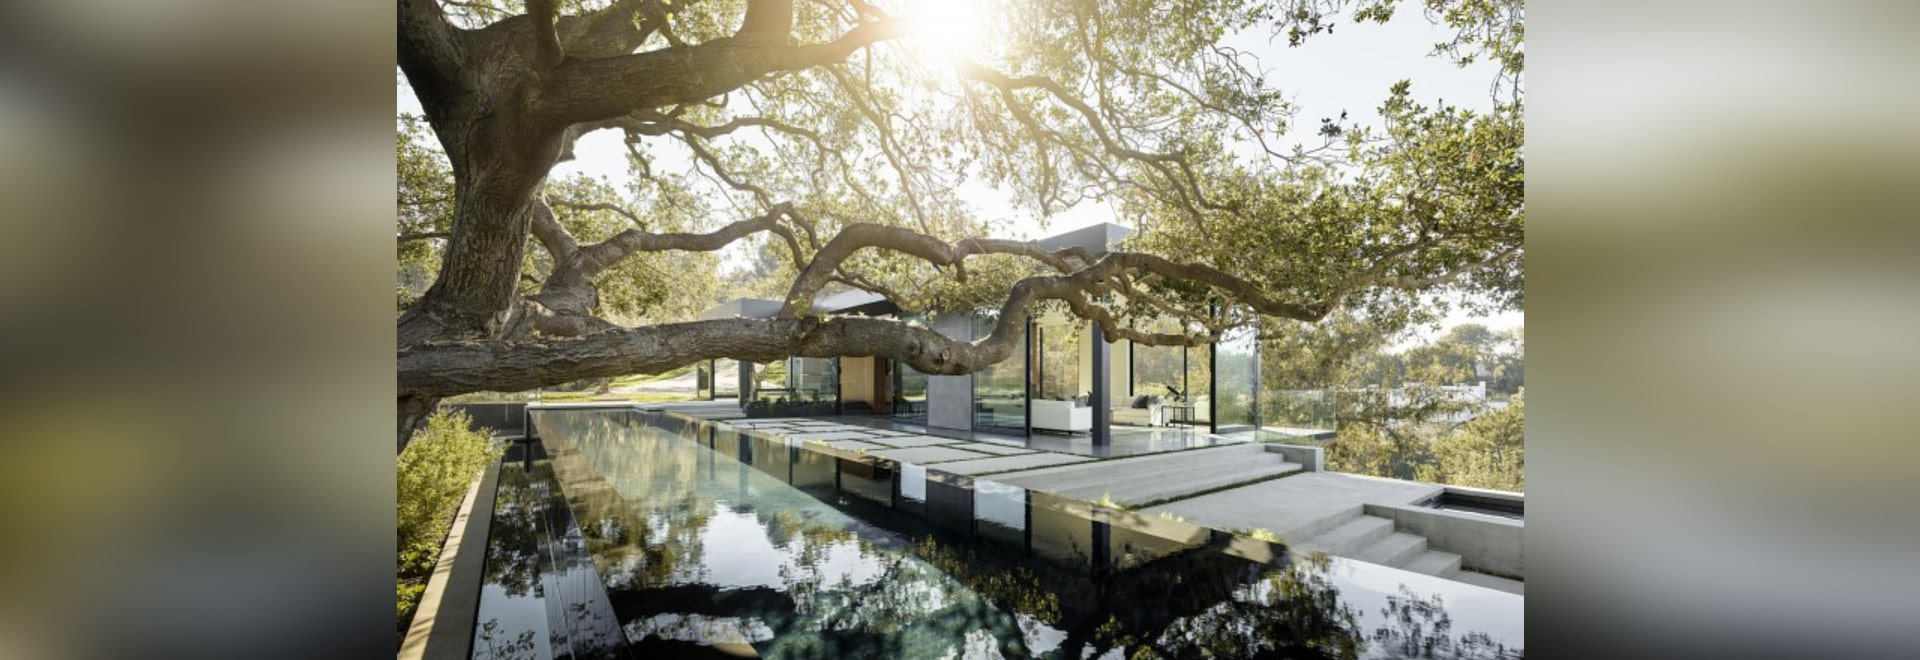 walker workshop designs a discreet but stunning california home